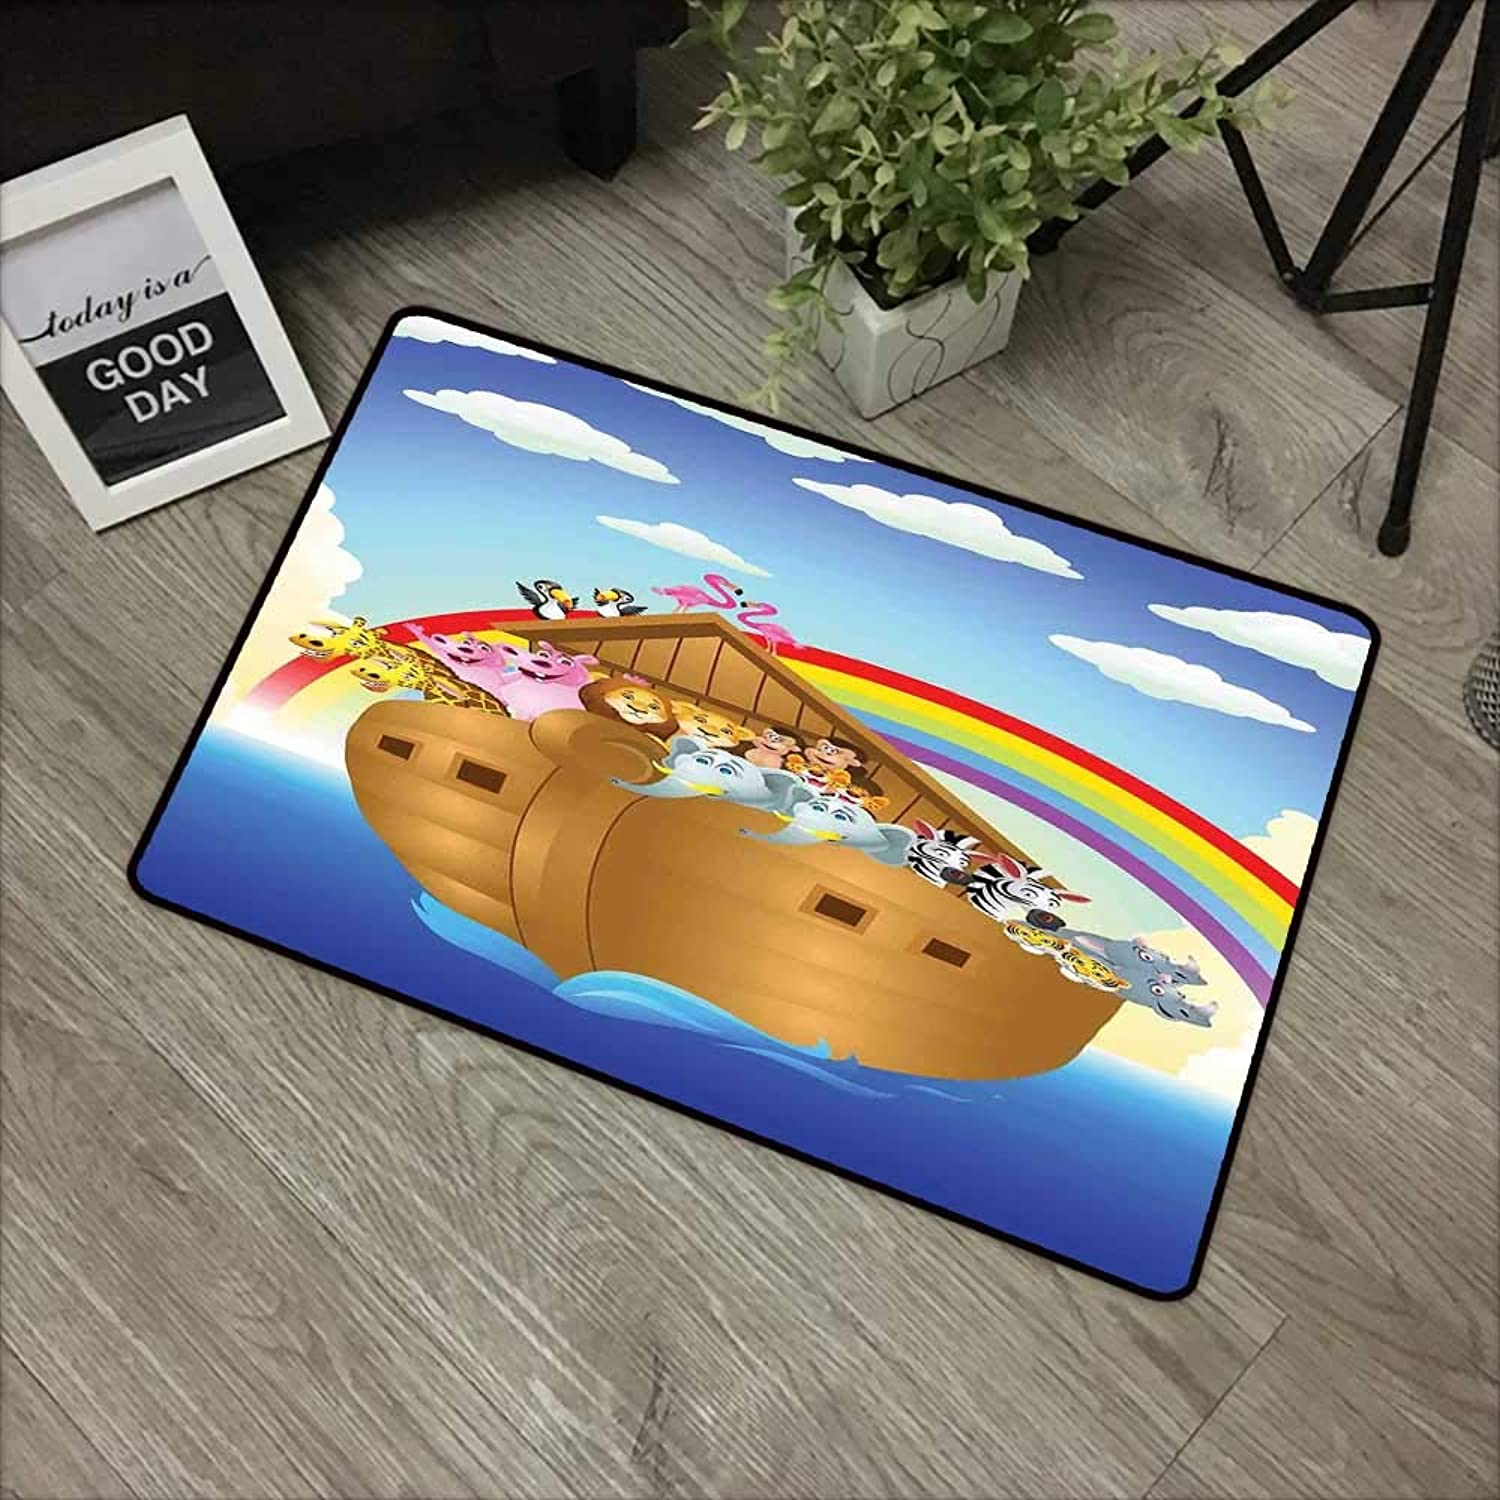 Pool Anti-Slip Door mat W35 x L59 INCH Cartoon,Cute Animals in The Ark Sailing in Sea Ship Old Story with Setting Sun Rainbows,Multicolor with Non-Slip Backing Door Mat Carpet